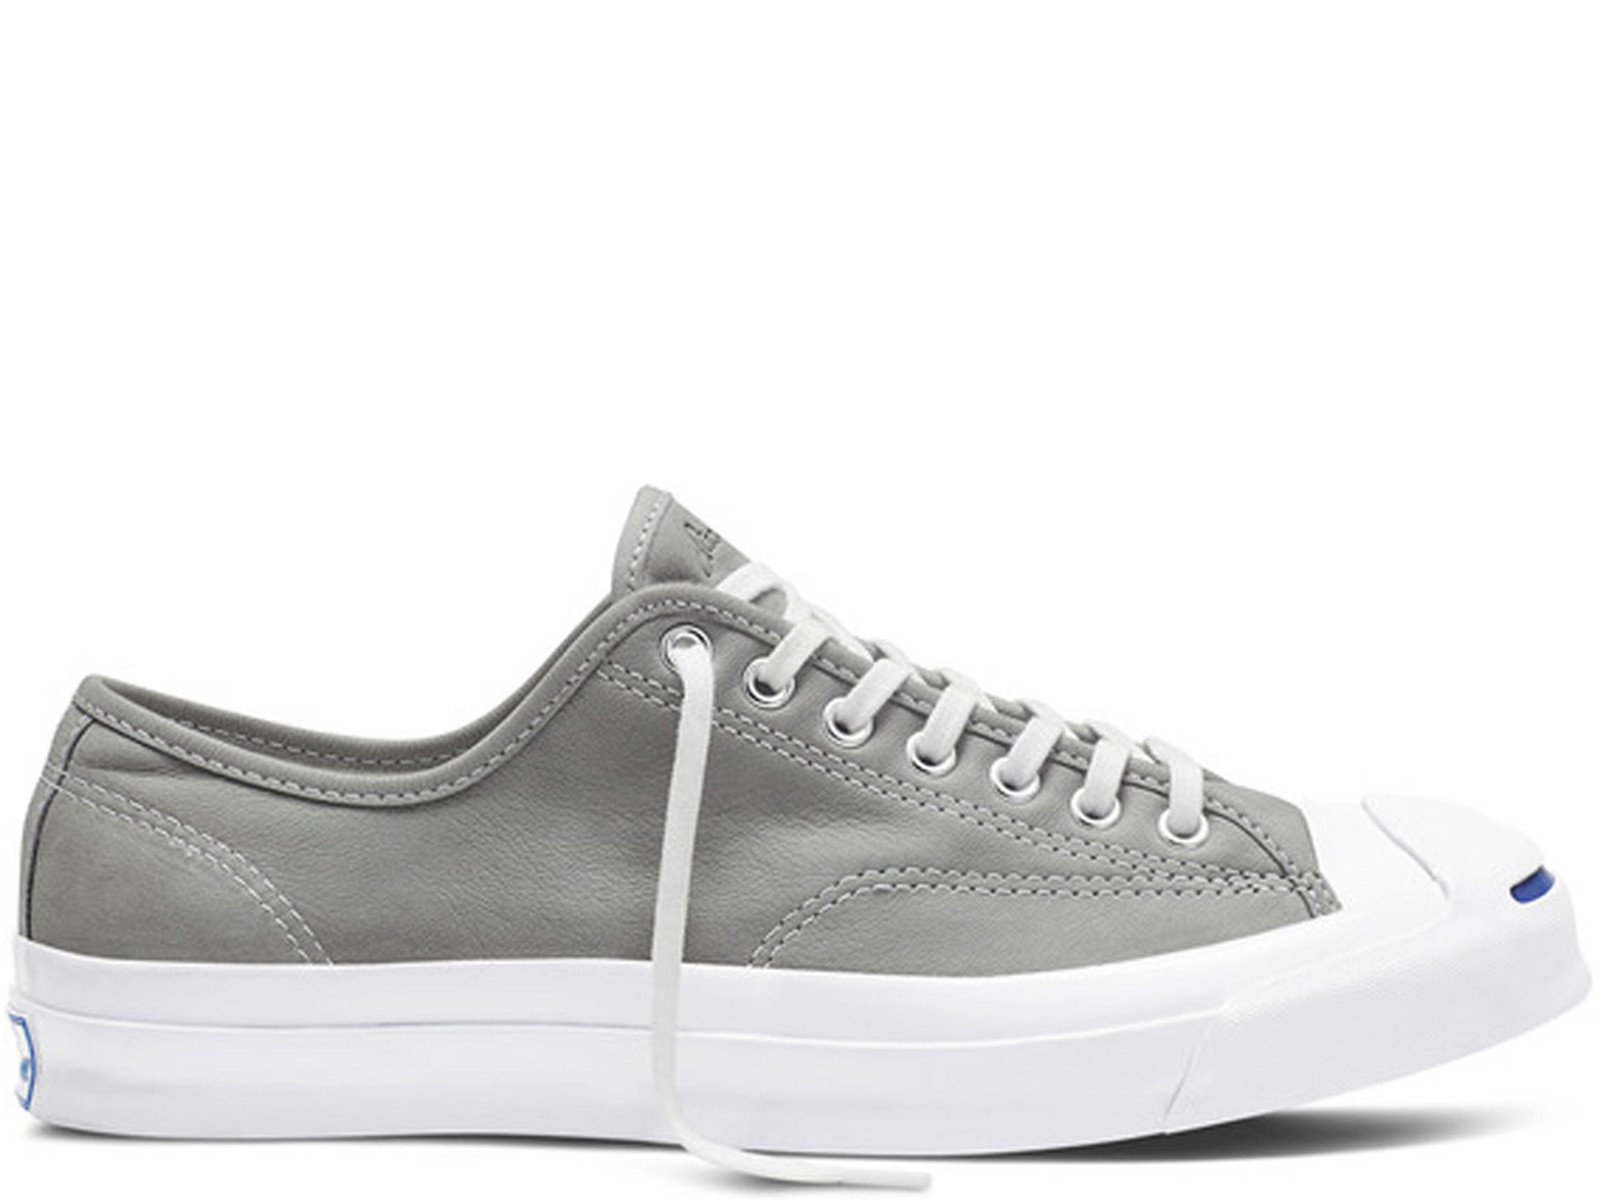 ff65636d109aa2 Mens Converse Jack Purcell Signature OX Grey White 151447C - Walmart.com